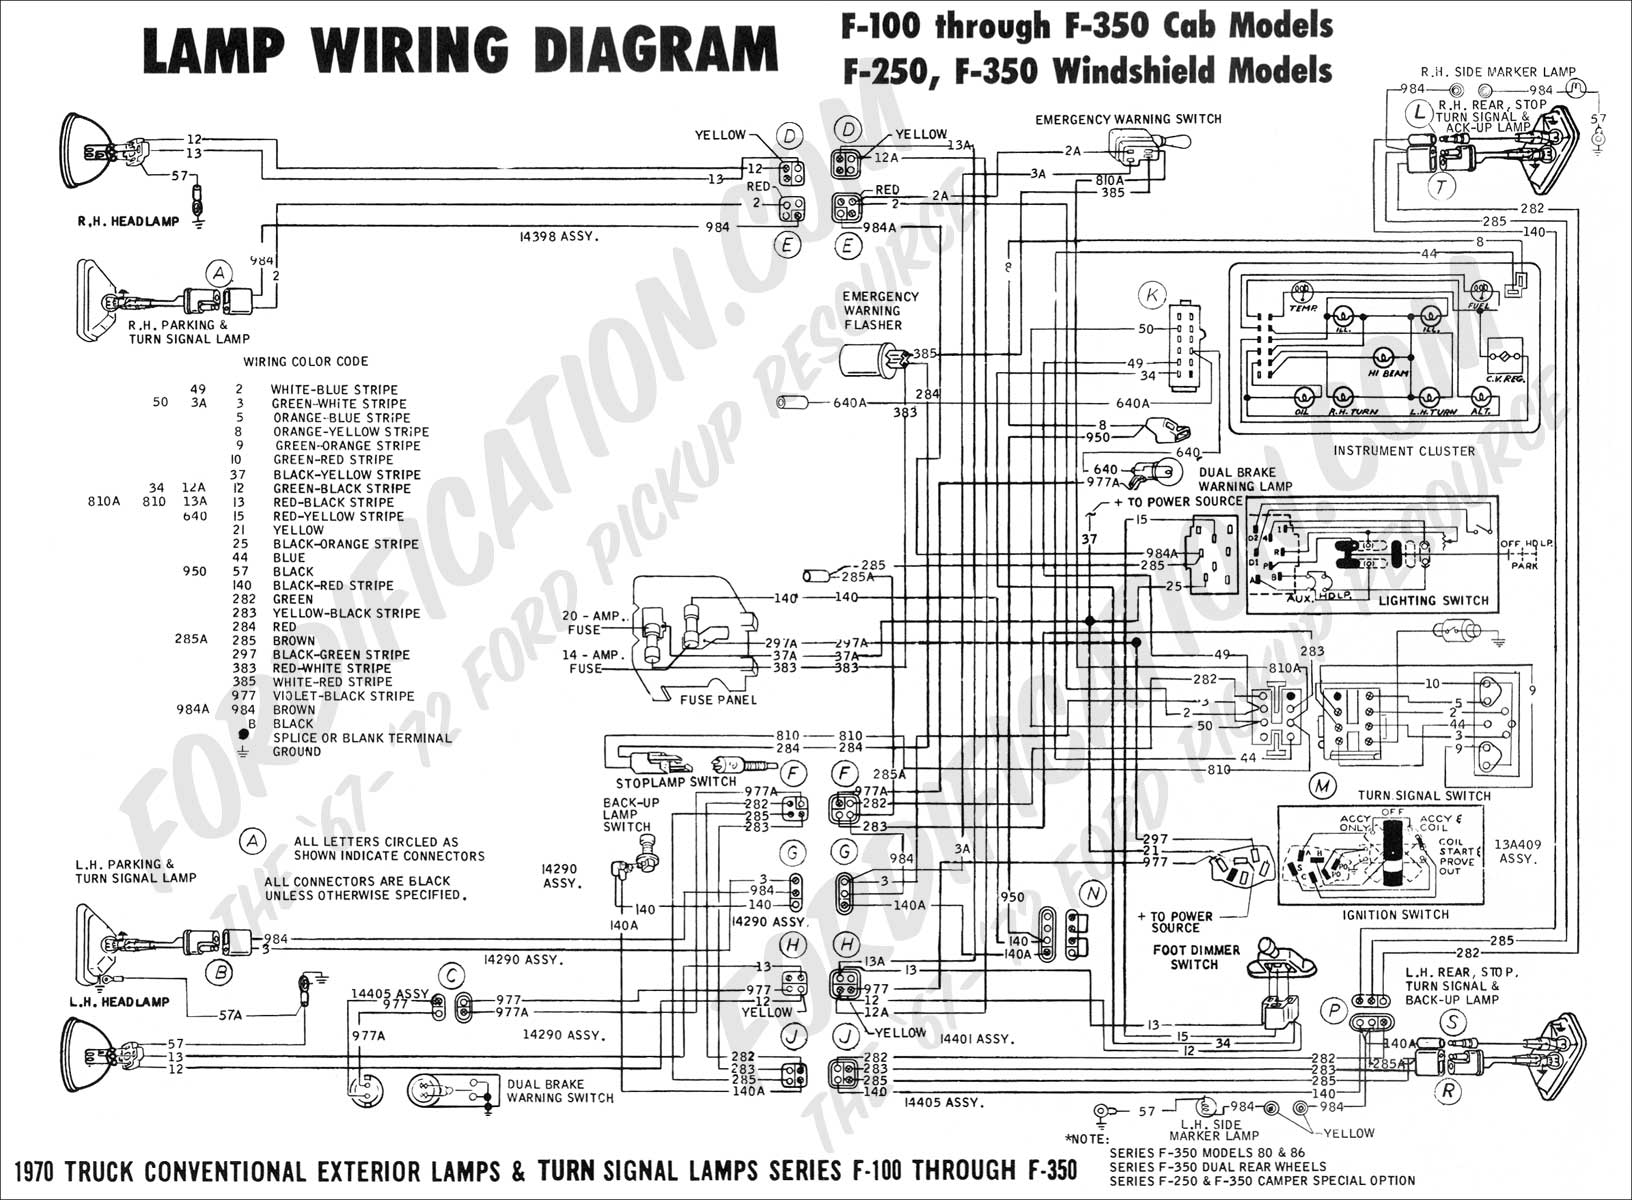 ford wiring diagram 2013 wiring diagrams online 2013 ford wiring diagram 2013 wiring diagrams online